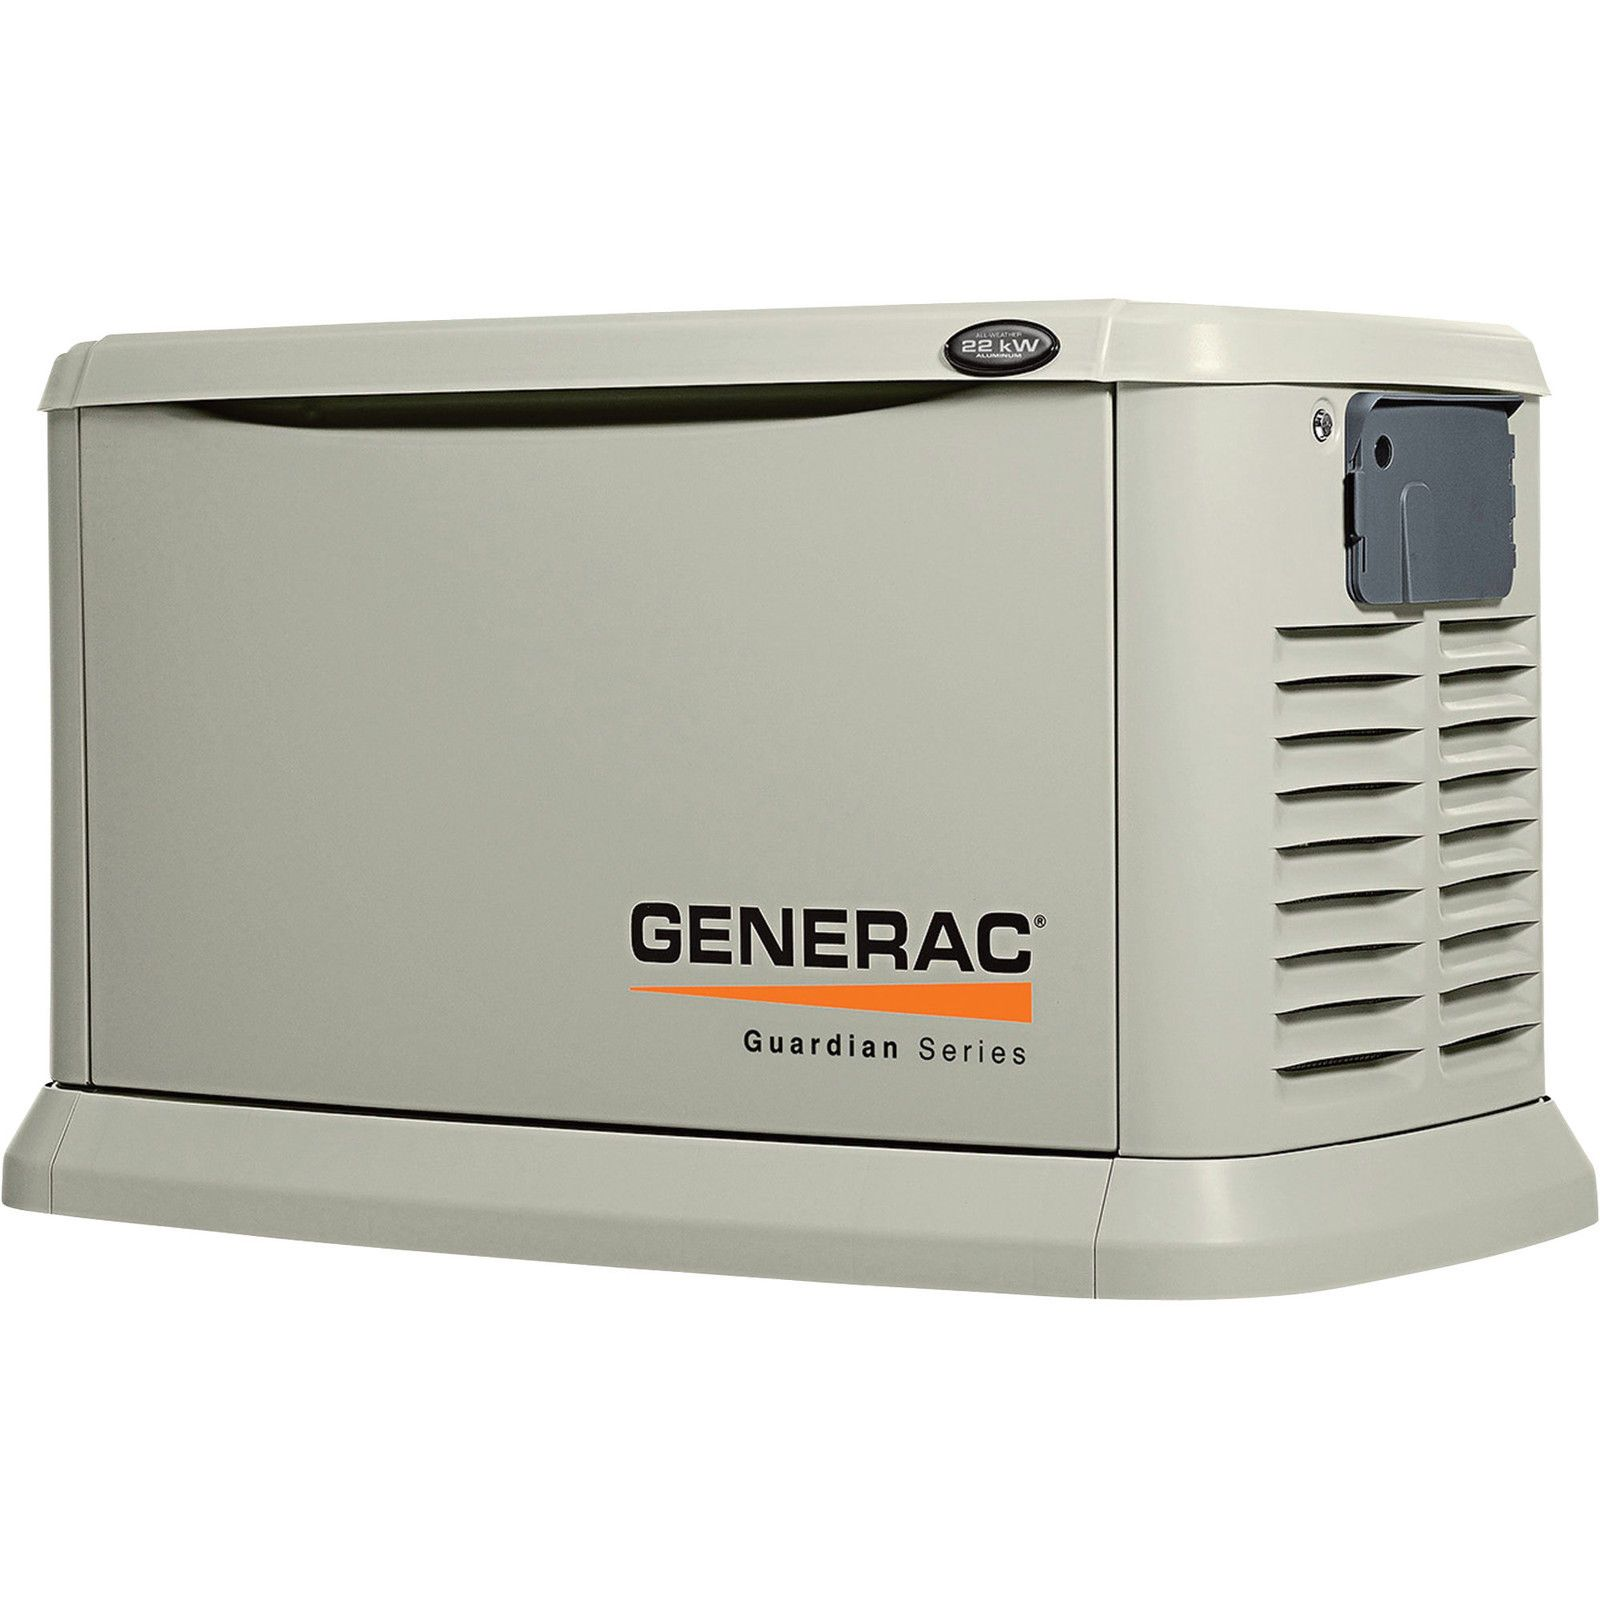 Generac 22kW Air Cooled Standby Generator $3749